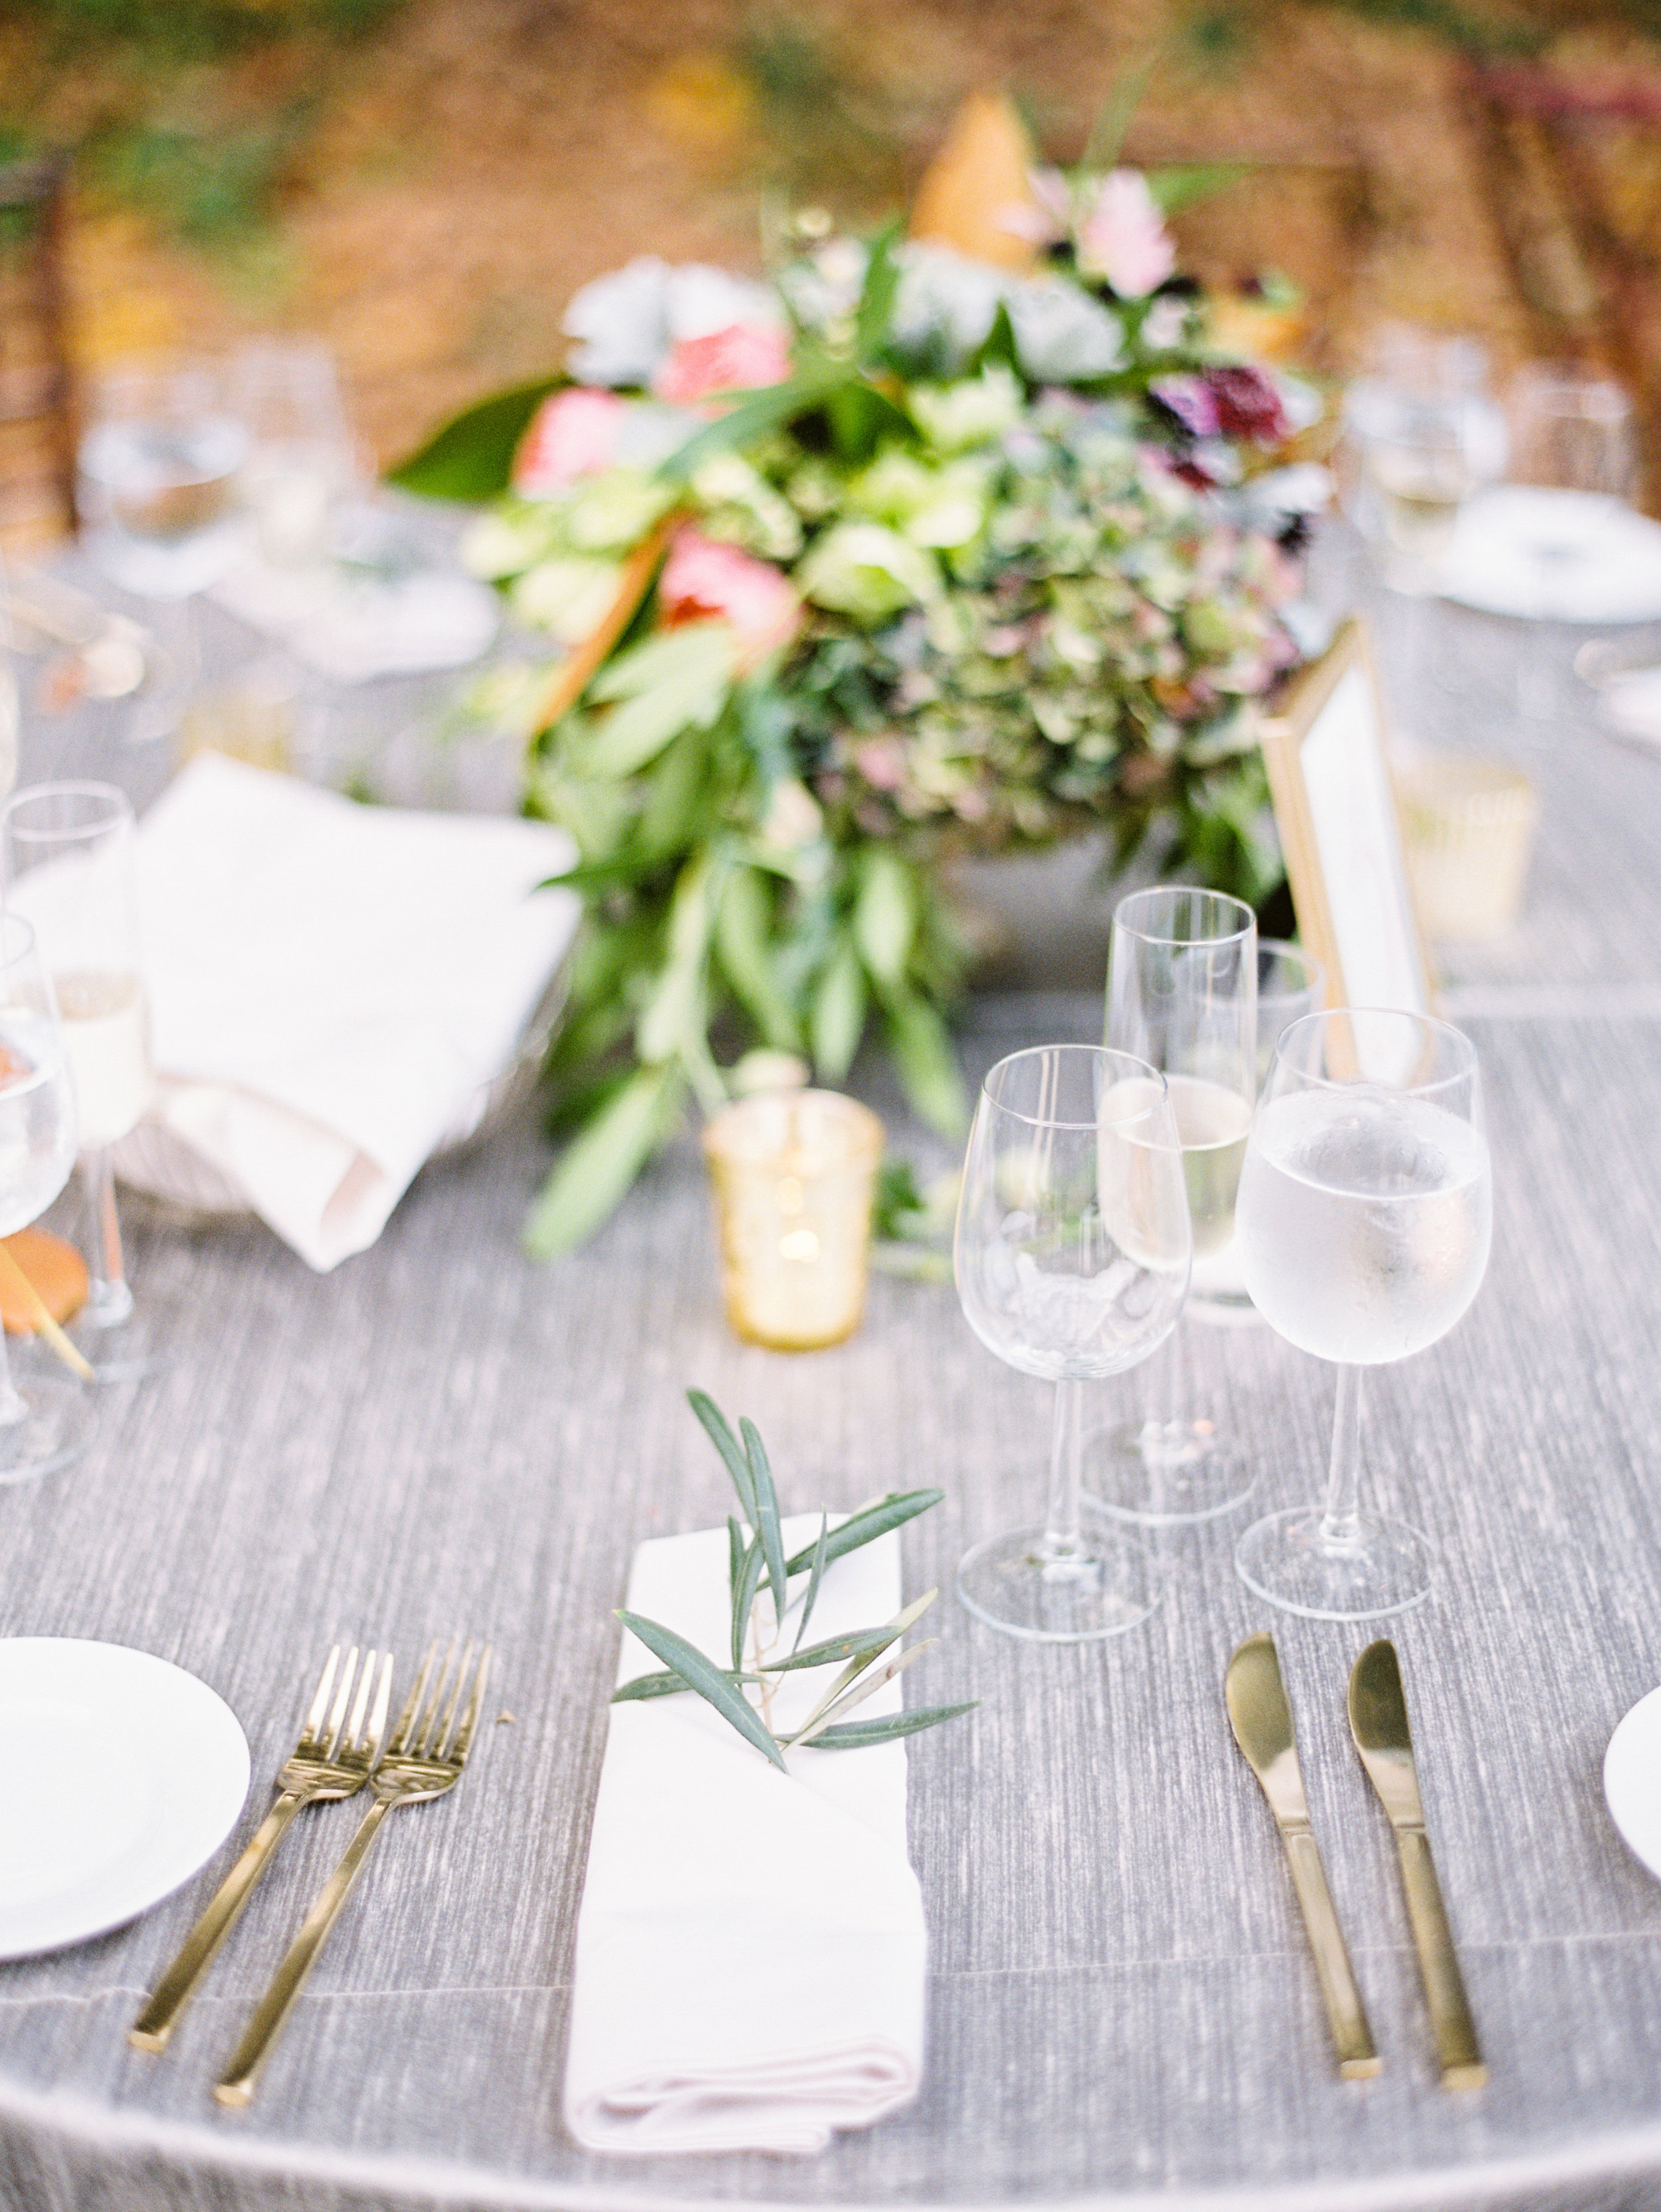 santabarbarawedding.com | Feast & Fest Catering | Table Set Up | Michael and Anna Costa Photographers